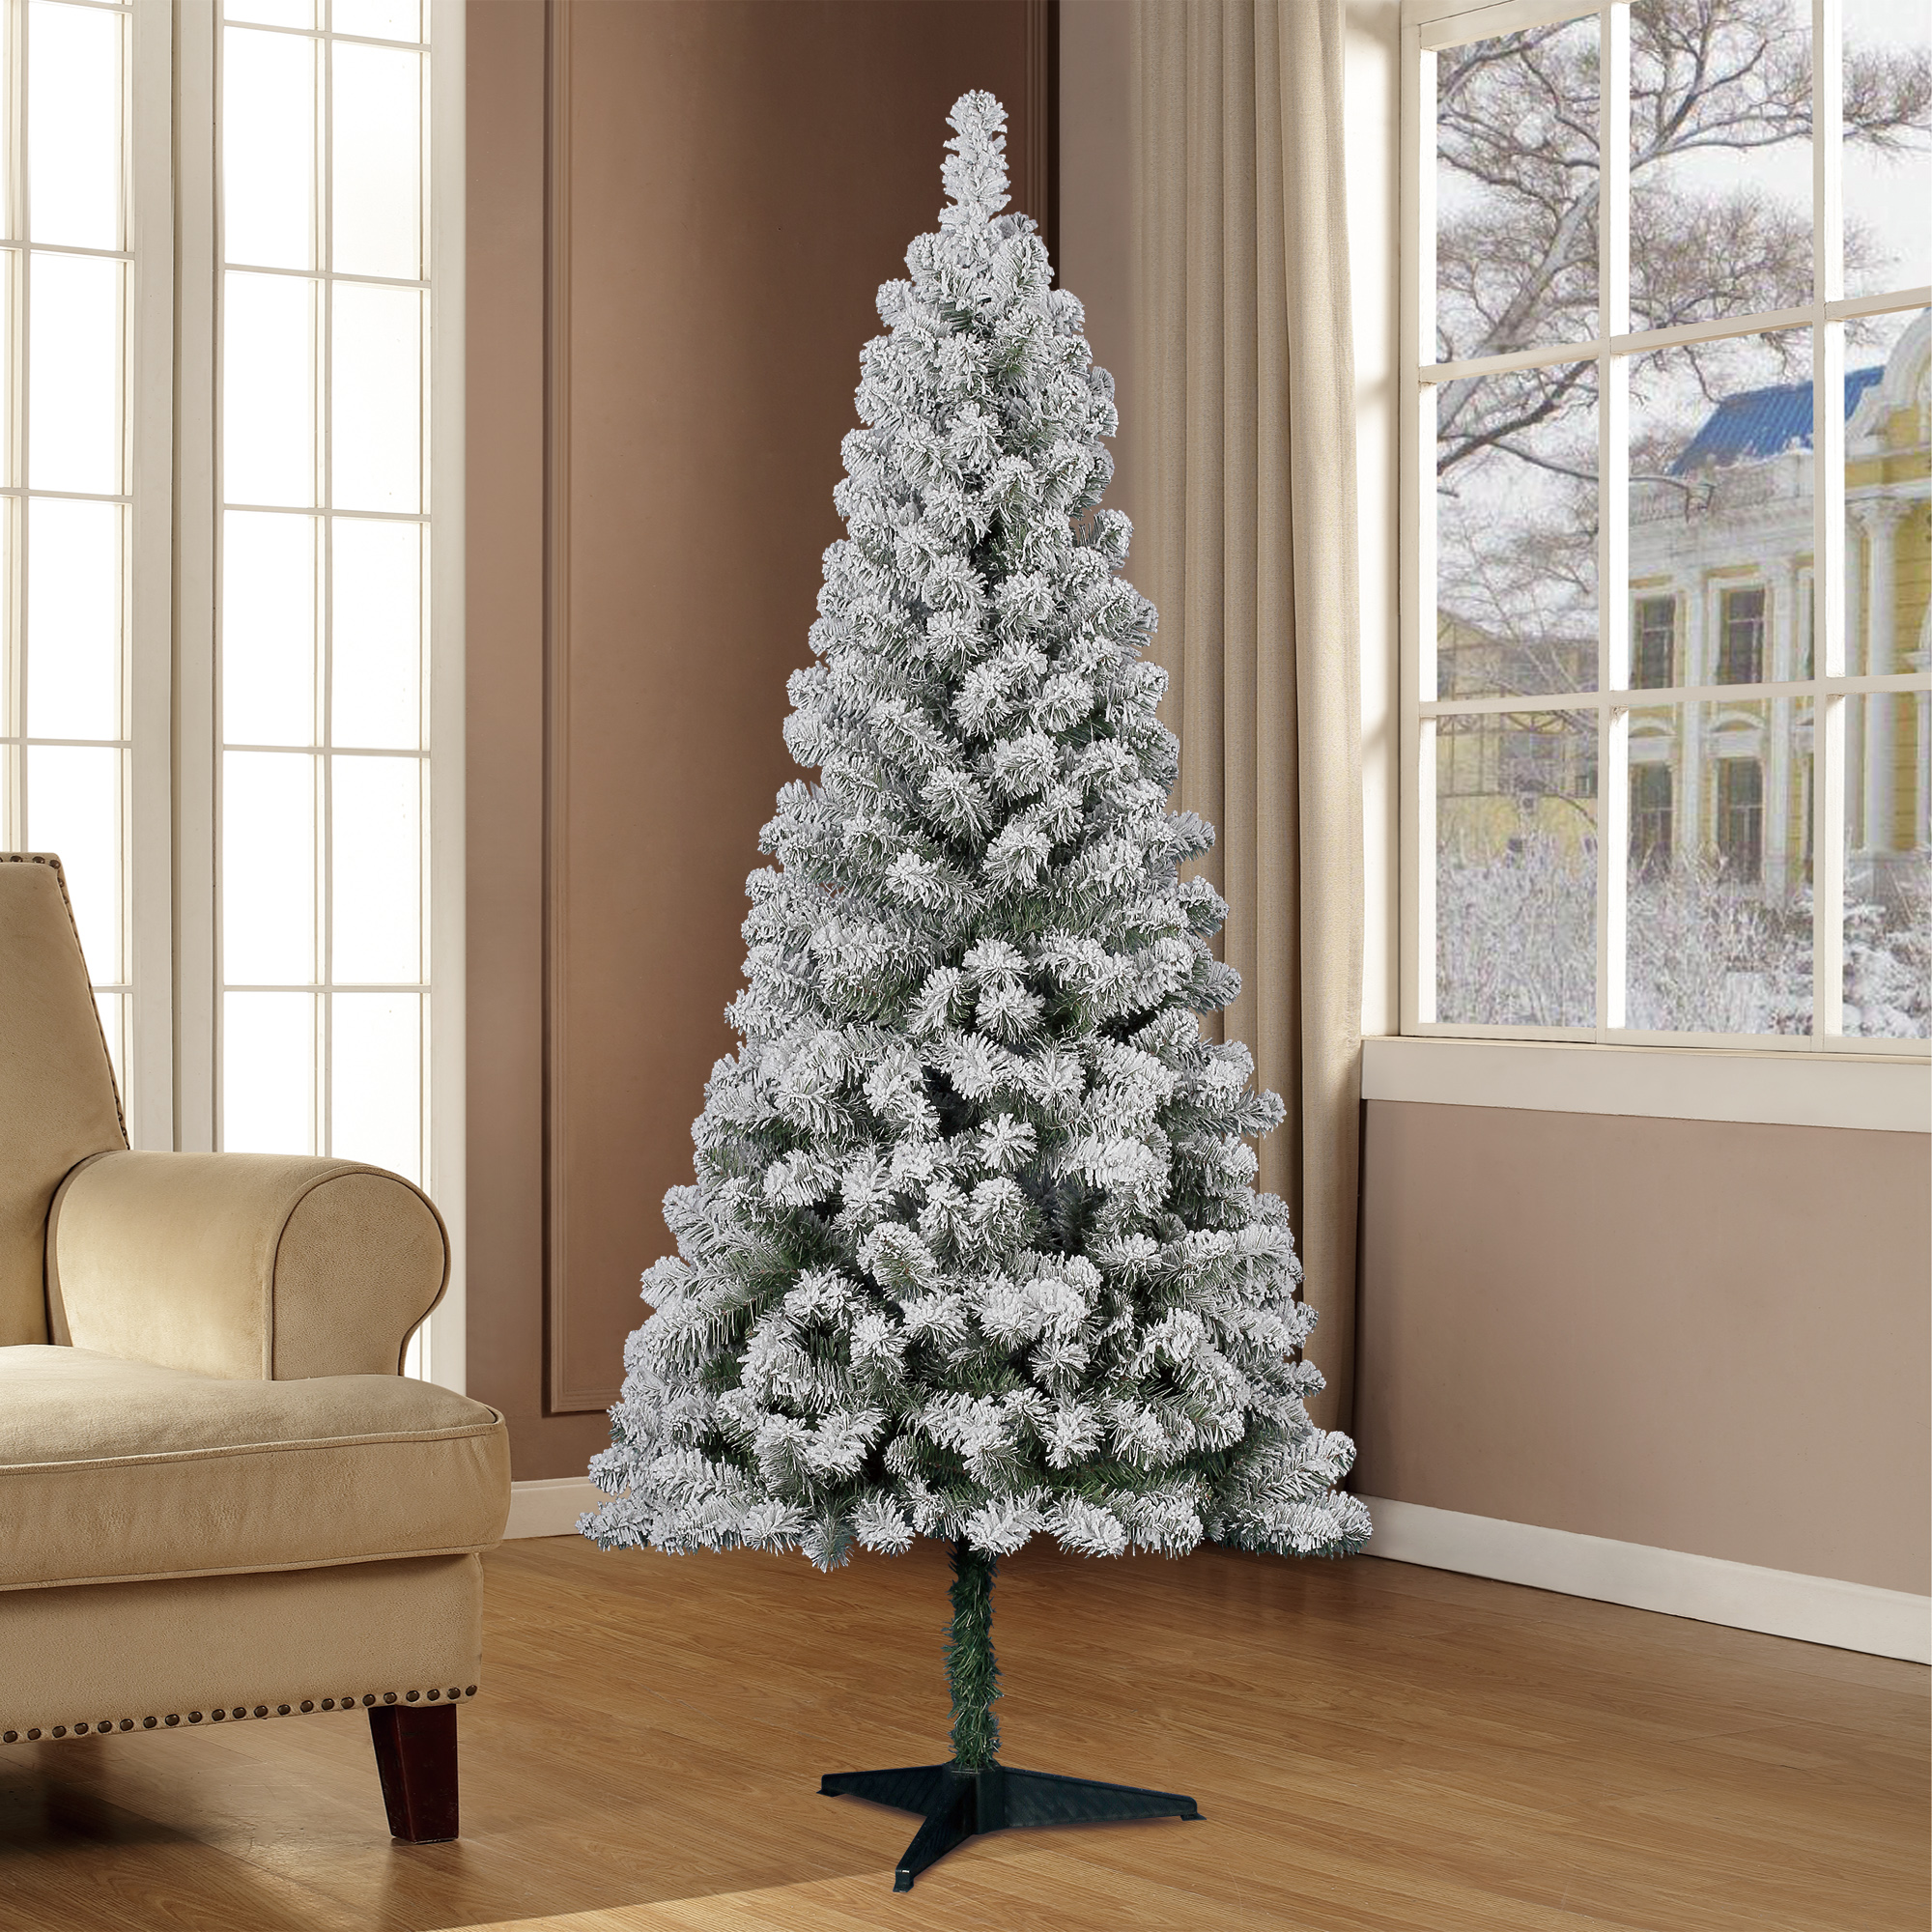 Holiday Time Flocked Pine Christmas Tree 6 Ft White On Green Walmart Com Walmart Com